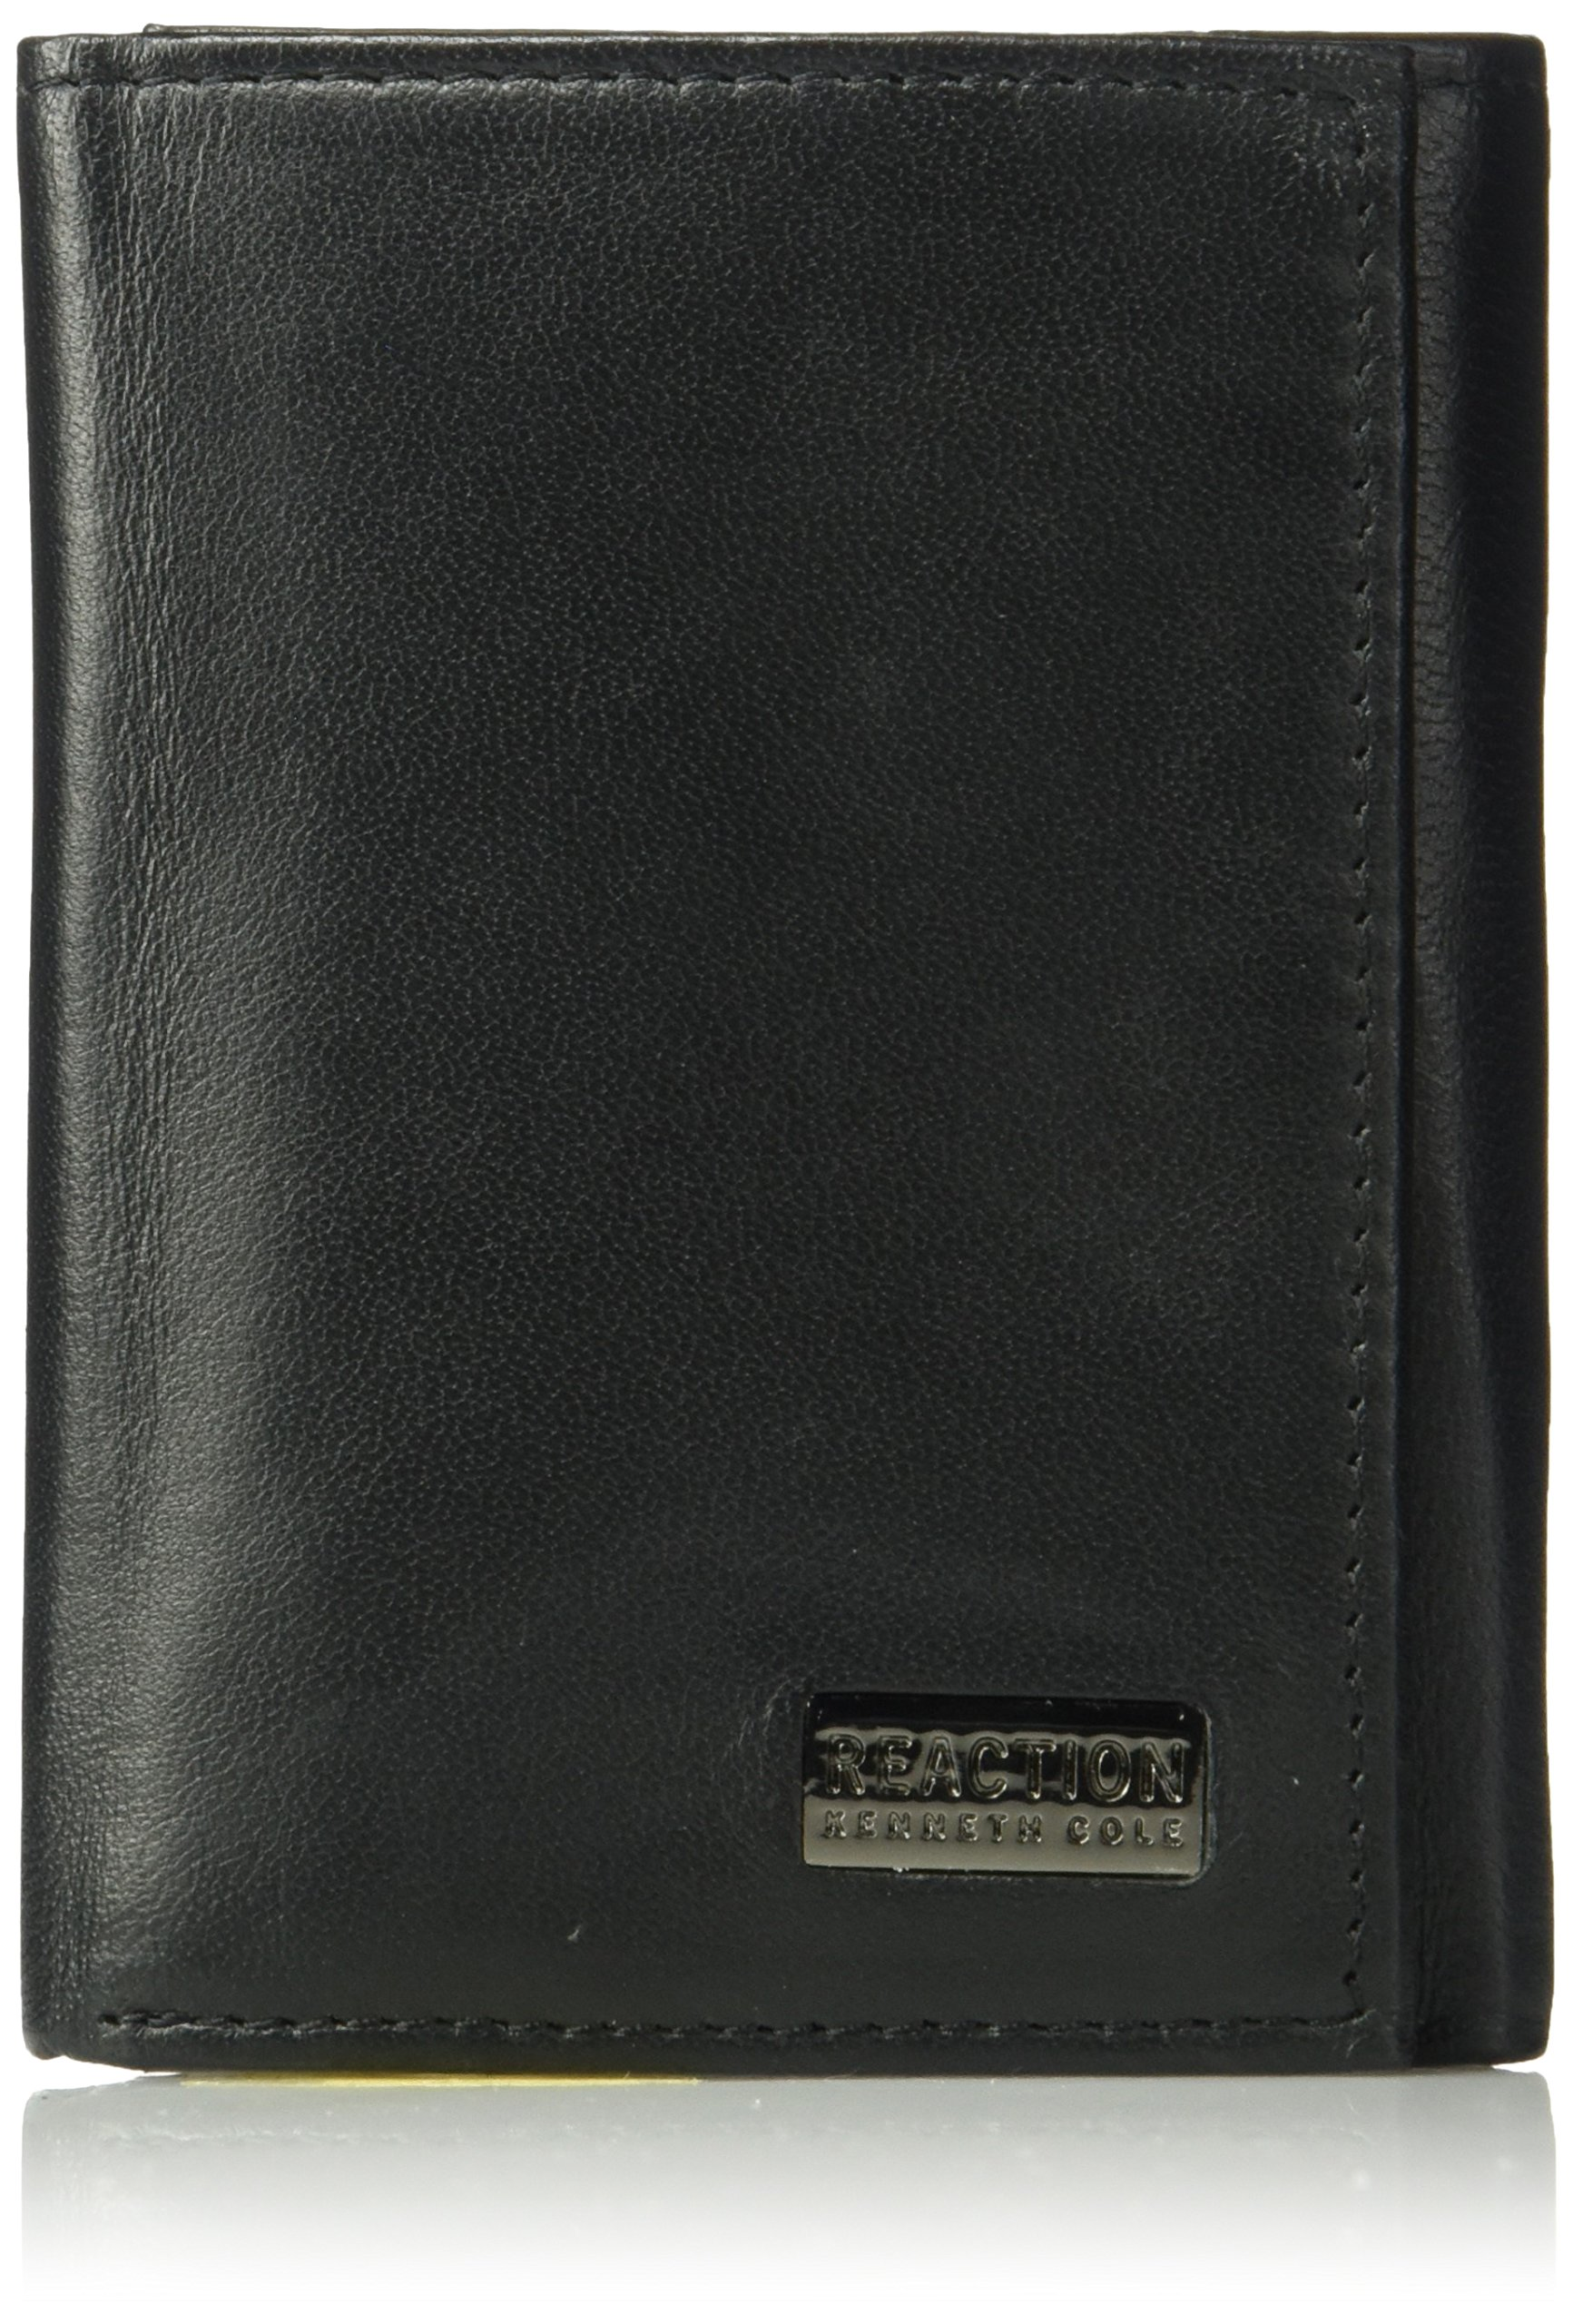 Kenneth Cole Reaction Men's Wallet - RFID Genuine Leather Slim Trifold with ID Window and Card Slots by Kenneth Cole REACTION